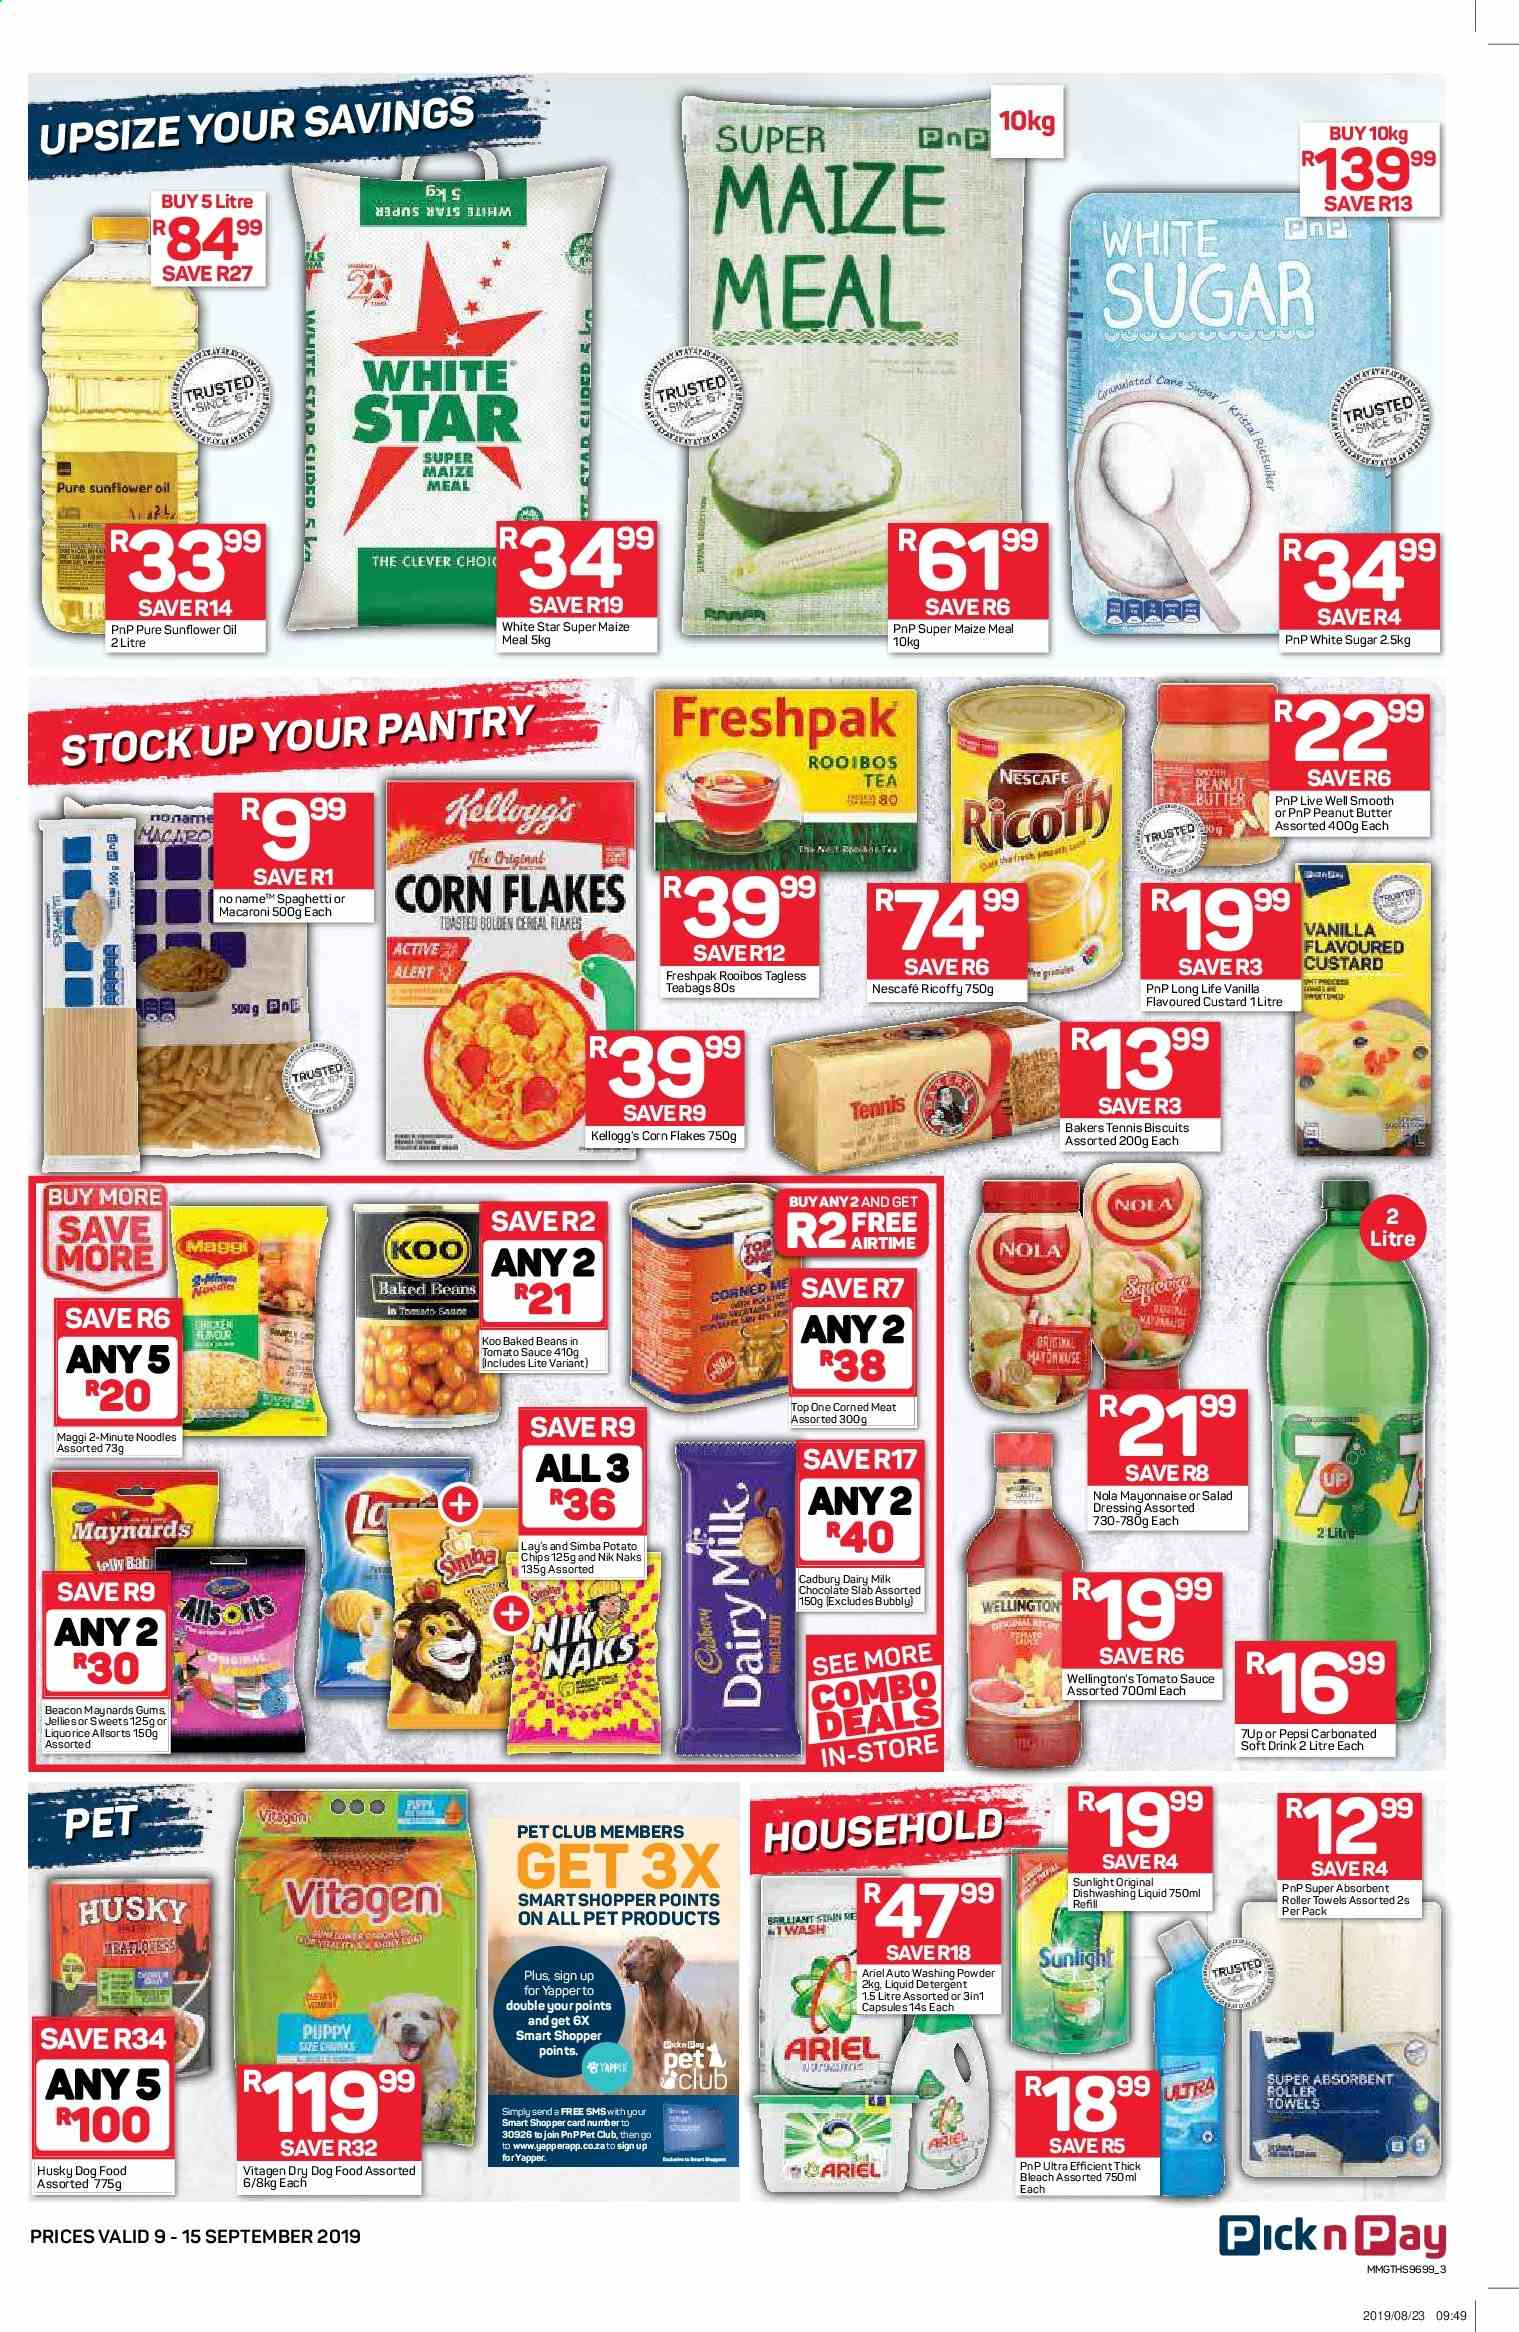 Pick n Pay catalogue  - 09.09.2019 - 09.15.2019. Page 3.